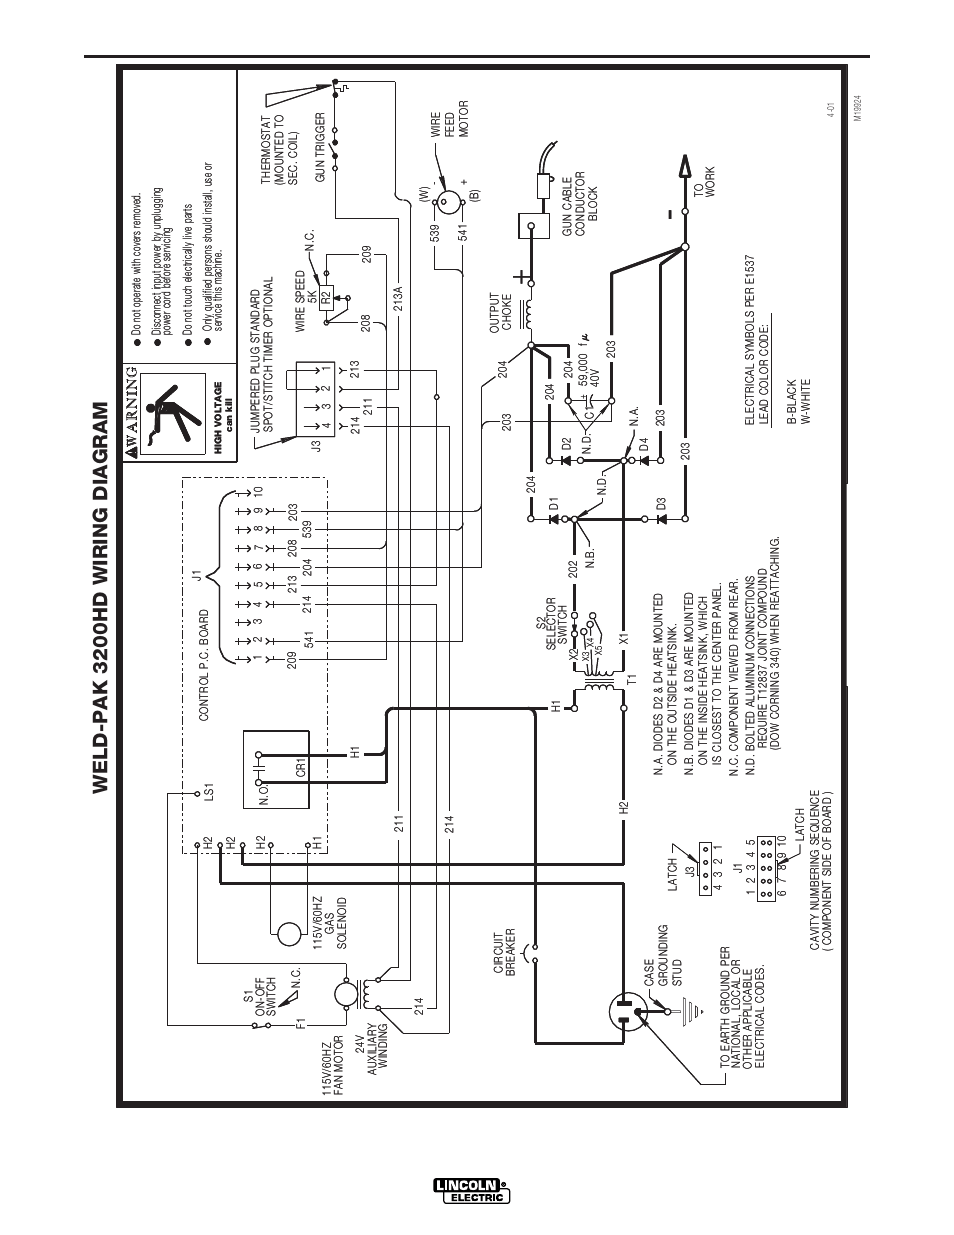 Lincoln 225 Welder Wiring Diagram - Wiring Diagrams Schematics on lincoln starting problems, lincoln ls relay diagram, lincoln ls wire harness diagram, lincoln heater core replacement, 92 lincoln air suspension diagrams, 2000 lincoln ls diagrams, lincoln front suspension, lincoln brakes, lincoln parts diagrams, lincoln transmission diagrams, lincoln continental horn schematics and diagram,